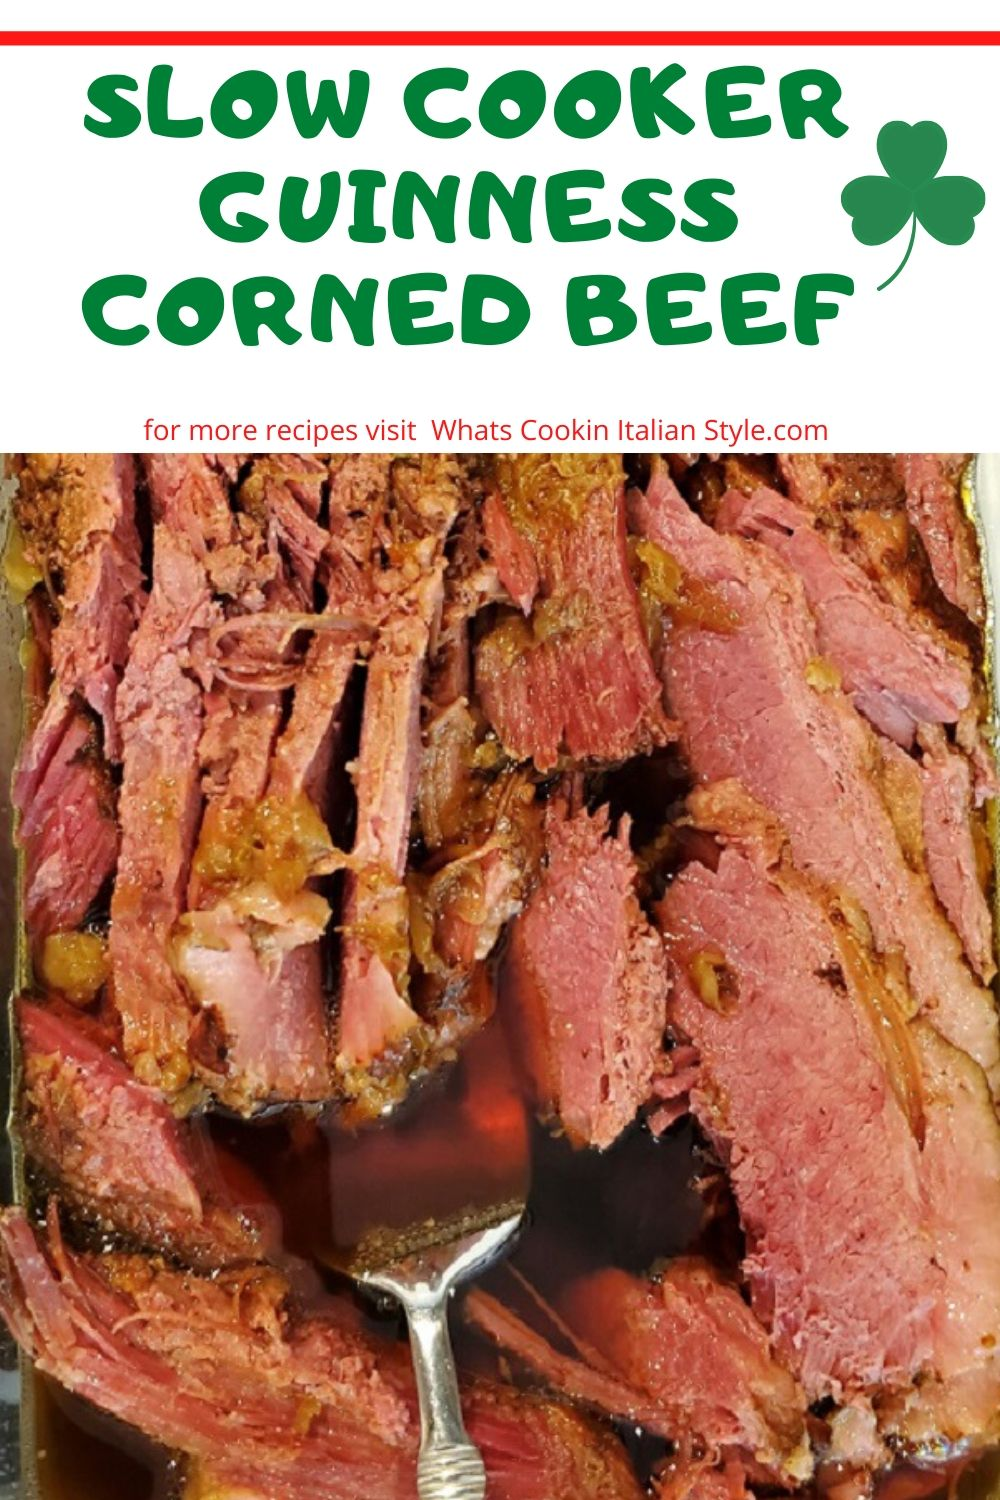 this is a recipe for how to make corned beef in the slow cooker with guinness beer